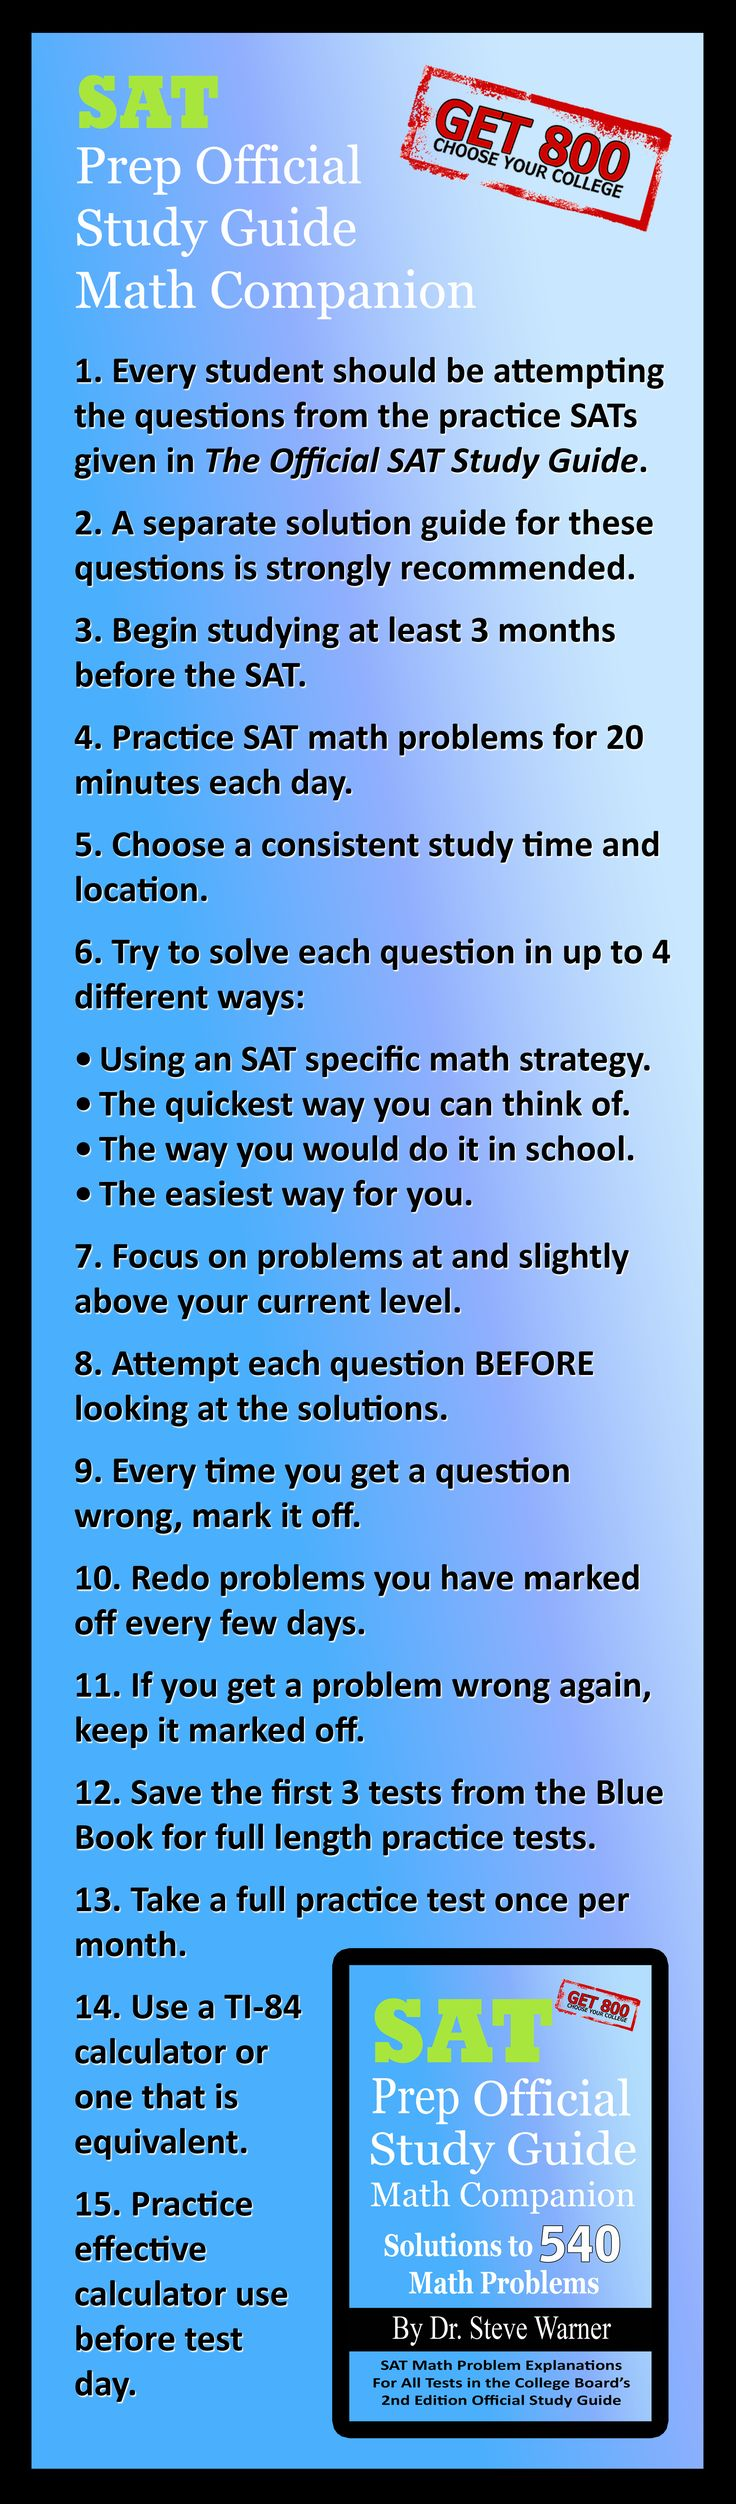 Dr. Steve Warner - SAT Prep Official Study Guide Math Companion. Available on Amazon: http://www.amazon.com/Prep-Official-Study-Guide-Companion/dp/1490435301/ref=as_li_ss_tl?ie=UTF8camp=1789creative=390957creativeASIN=1484894553linkCode=as2tag=drstssamaprpa-20/ref=sr_1_21?s=booksie=UTF8qid=1363297086sr=1-21keywords=sat+prep